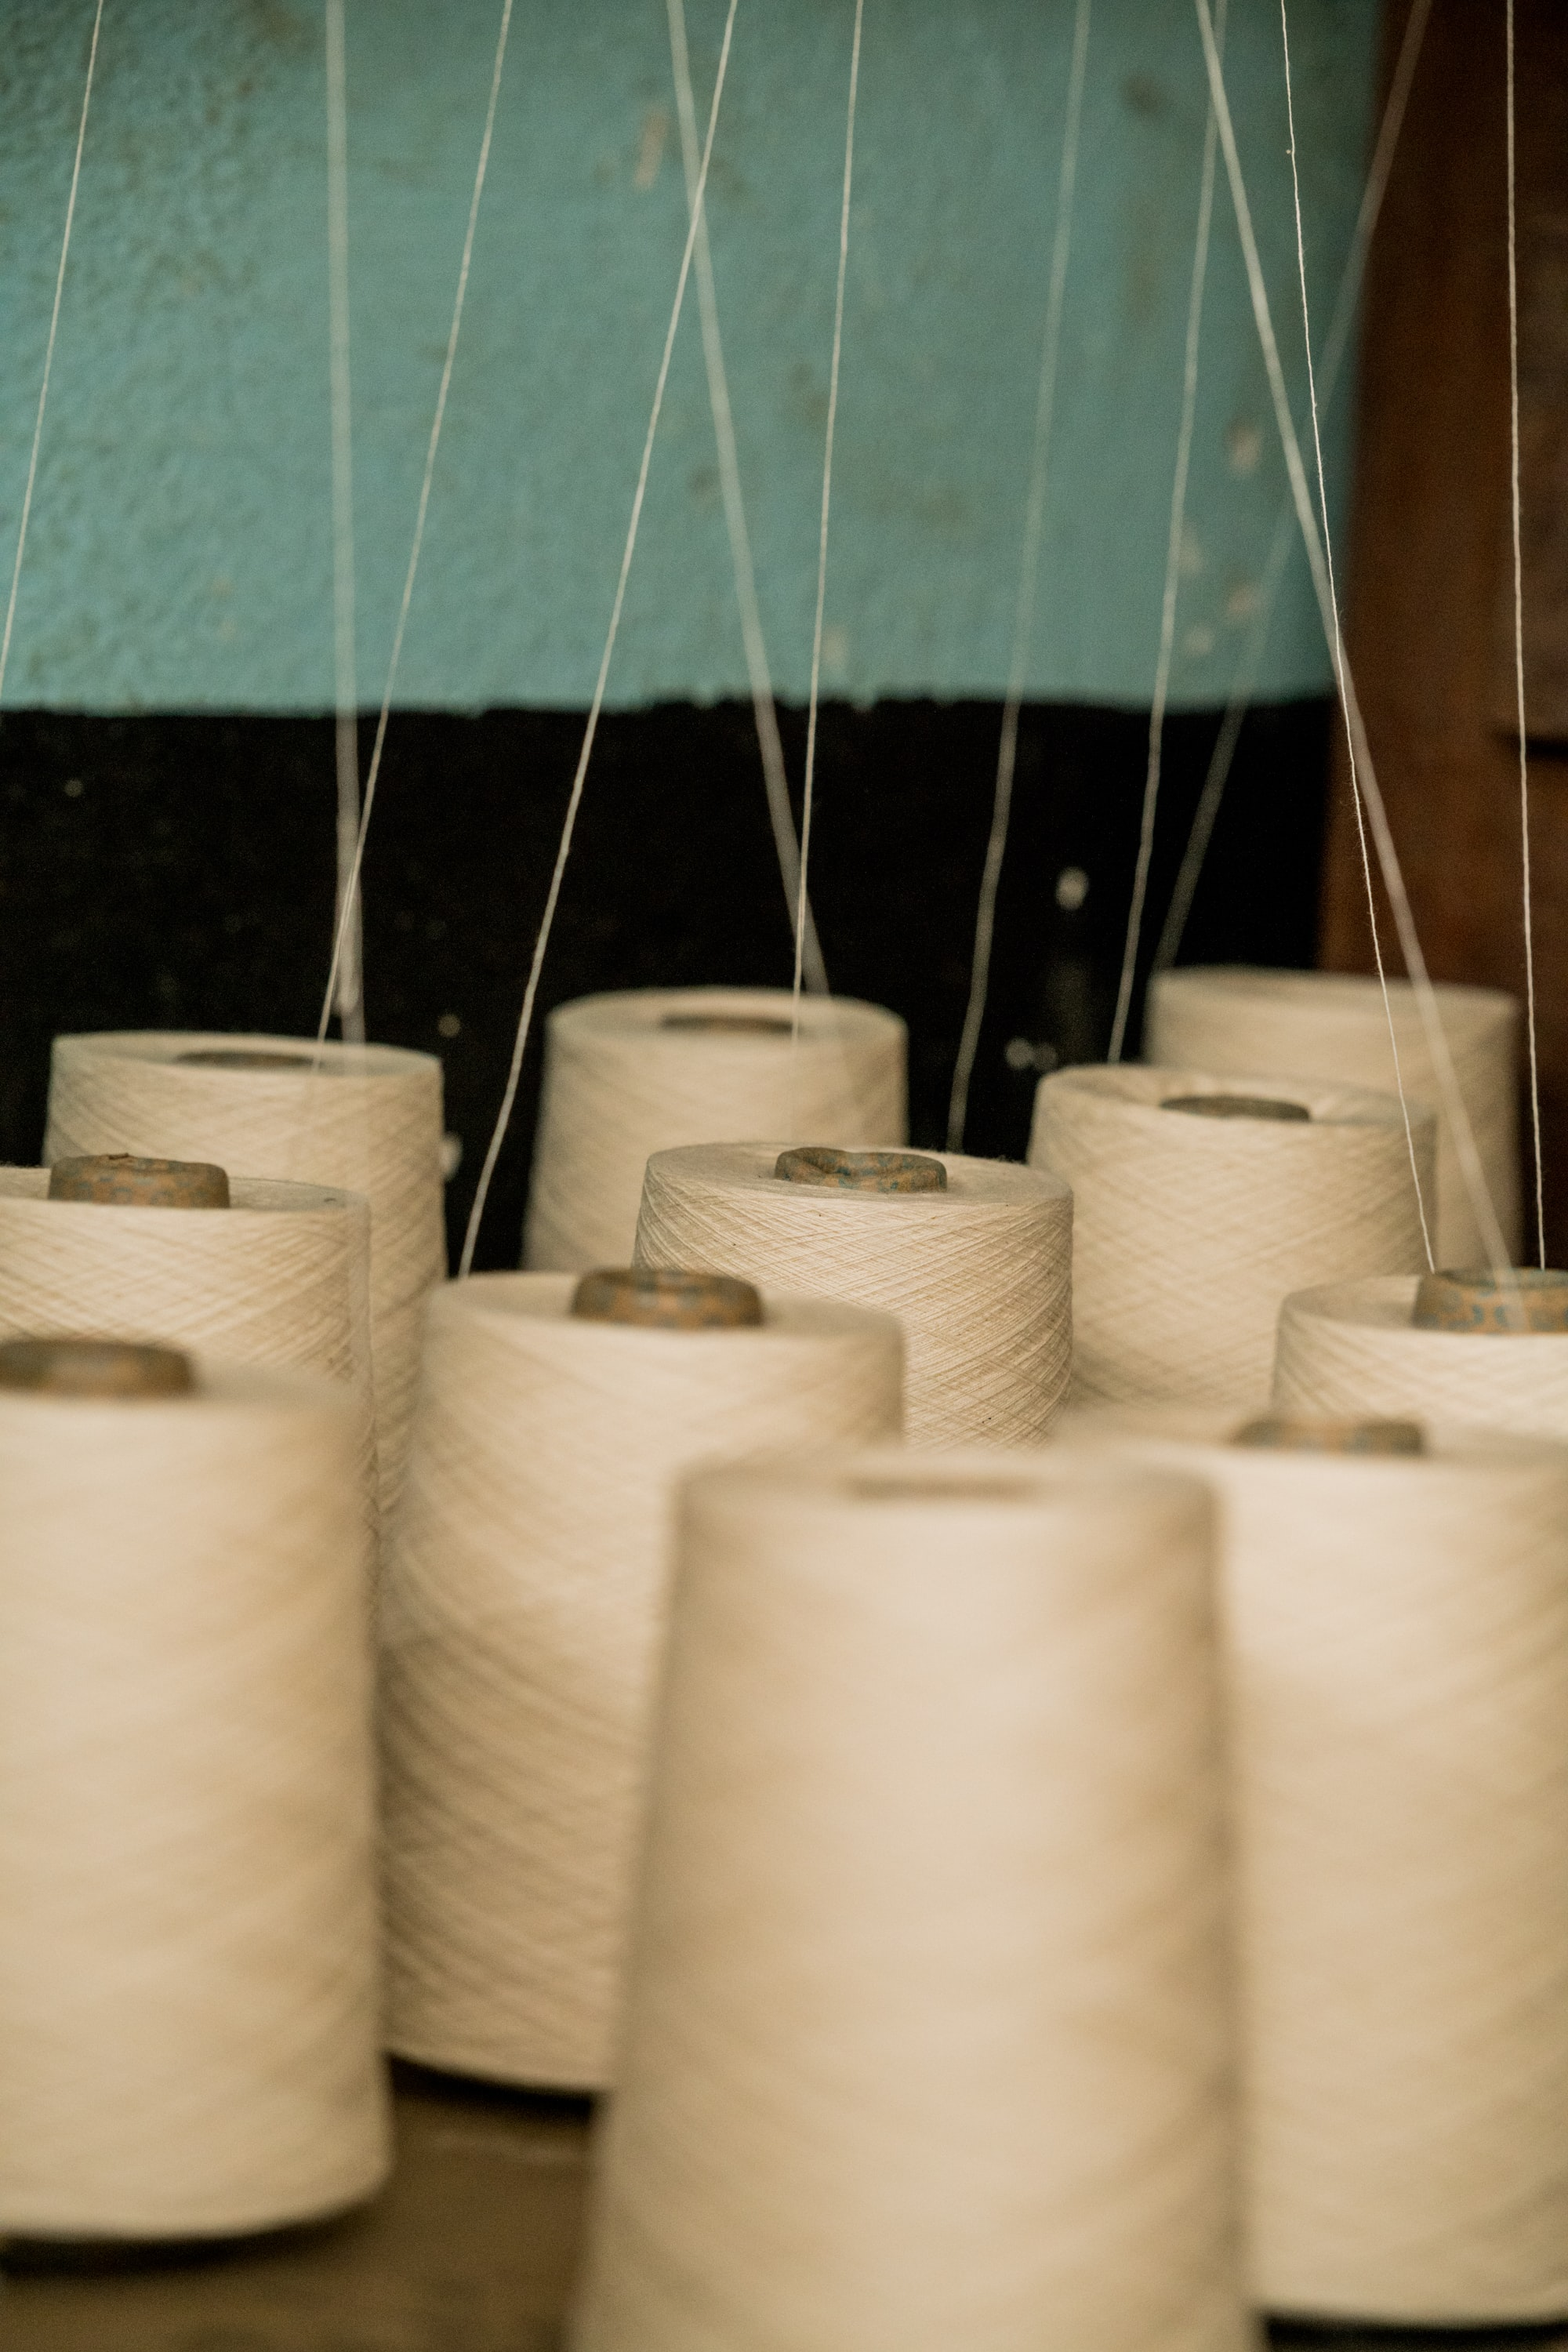 Photograph of multiple spools of thread.